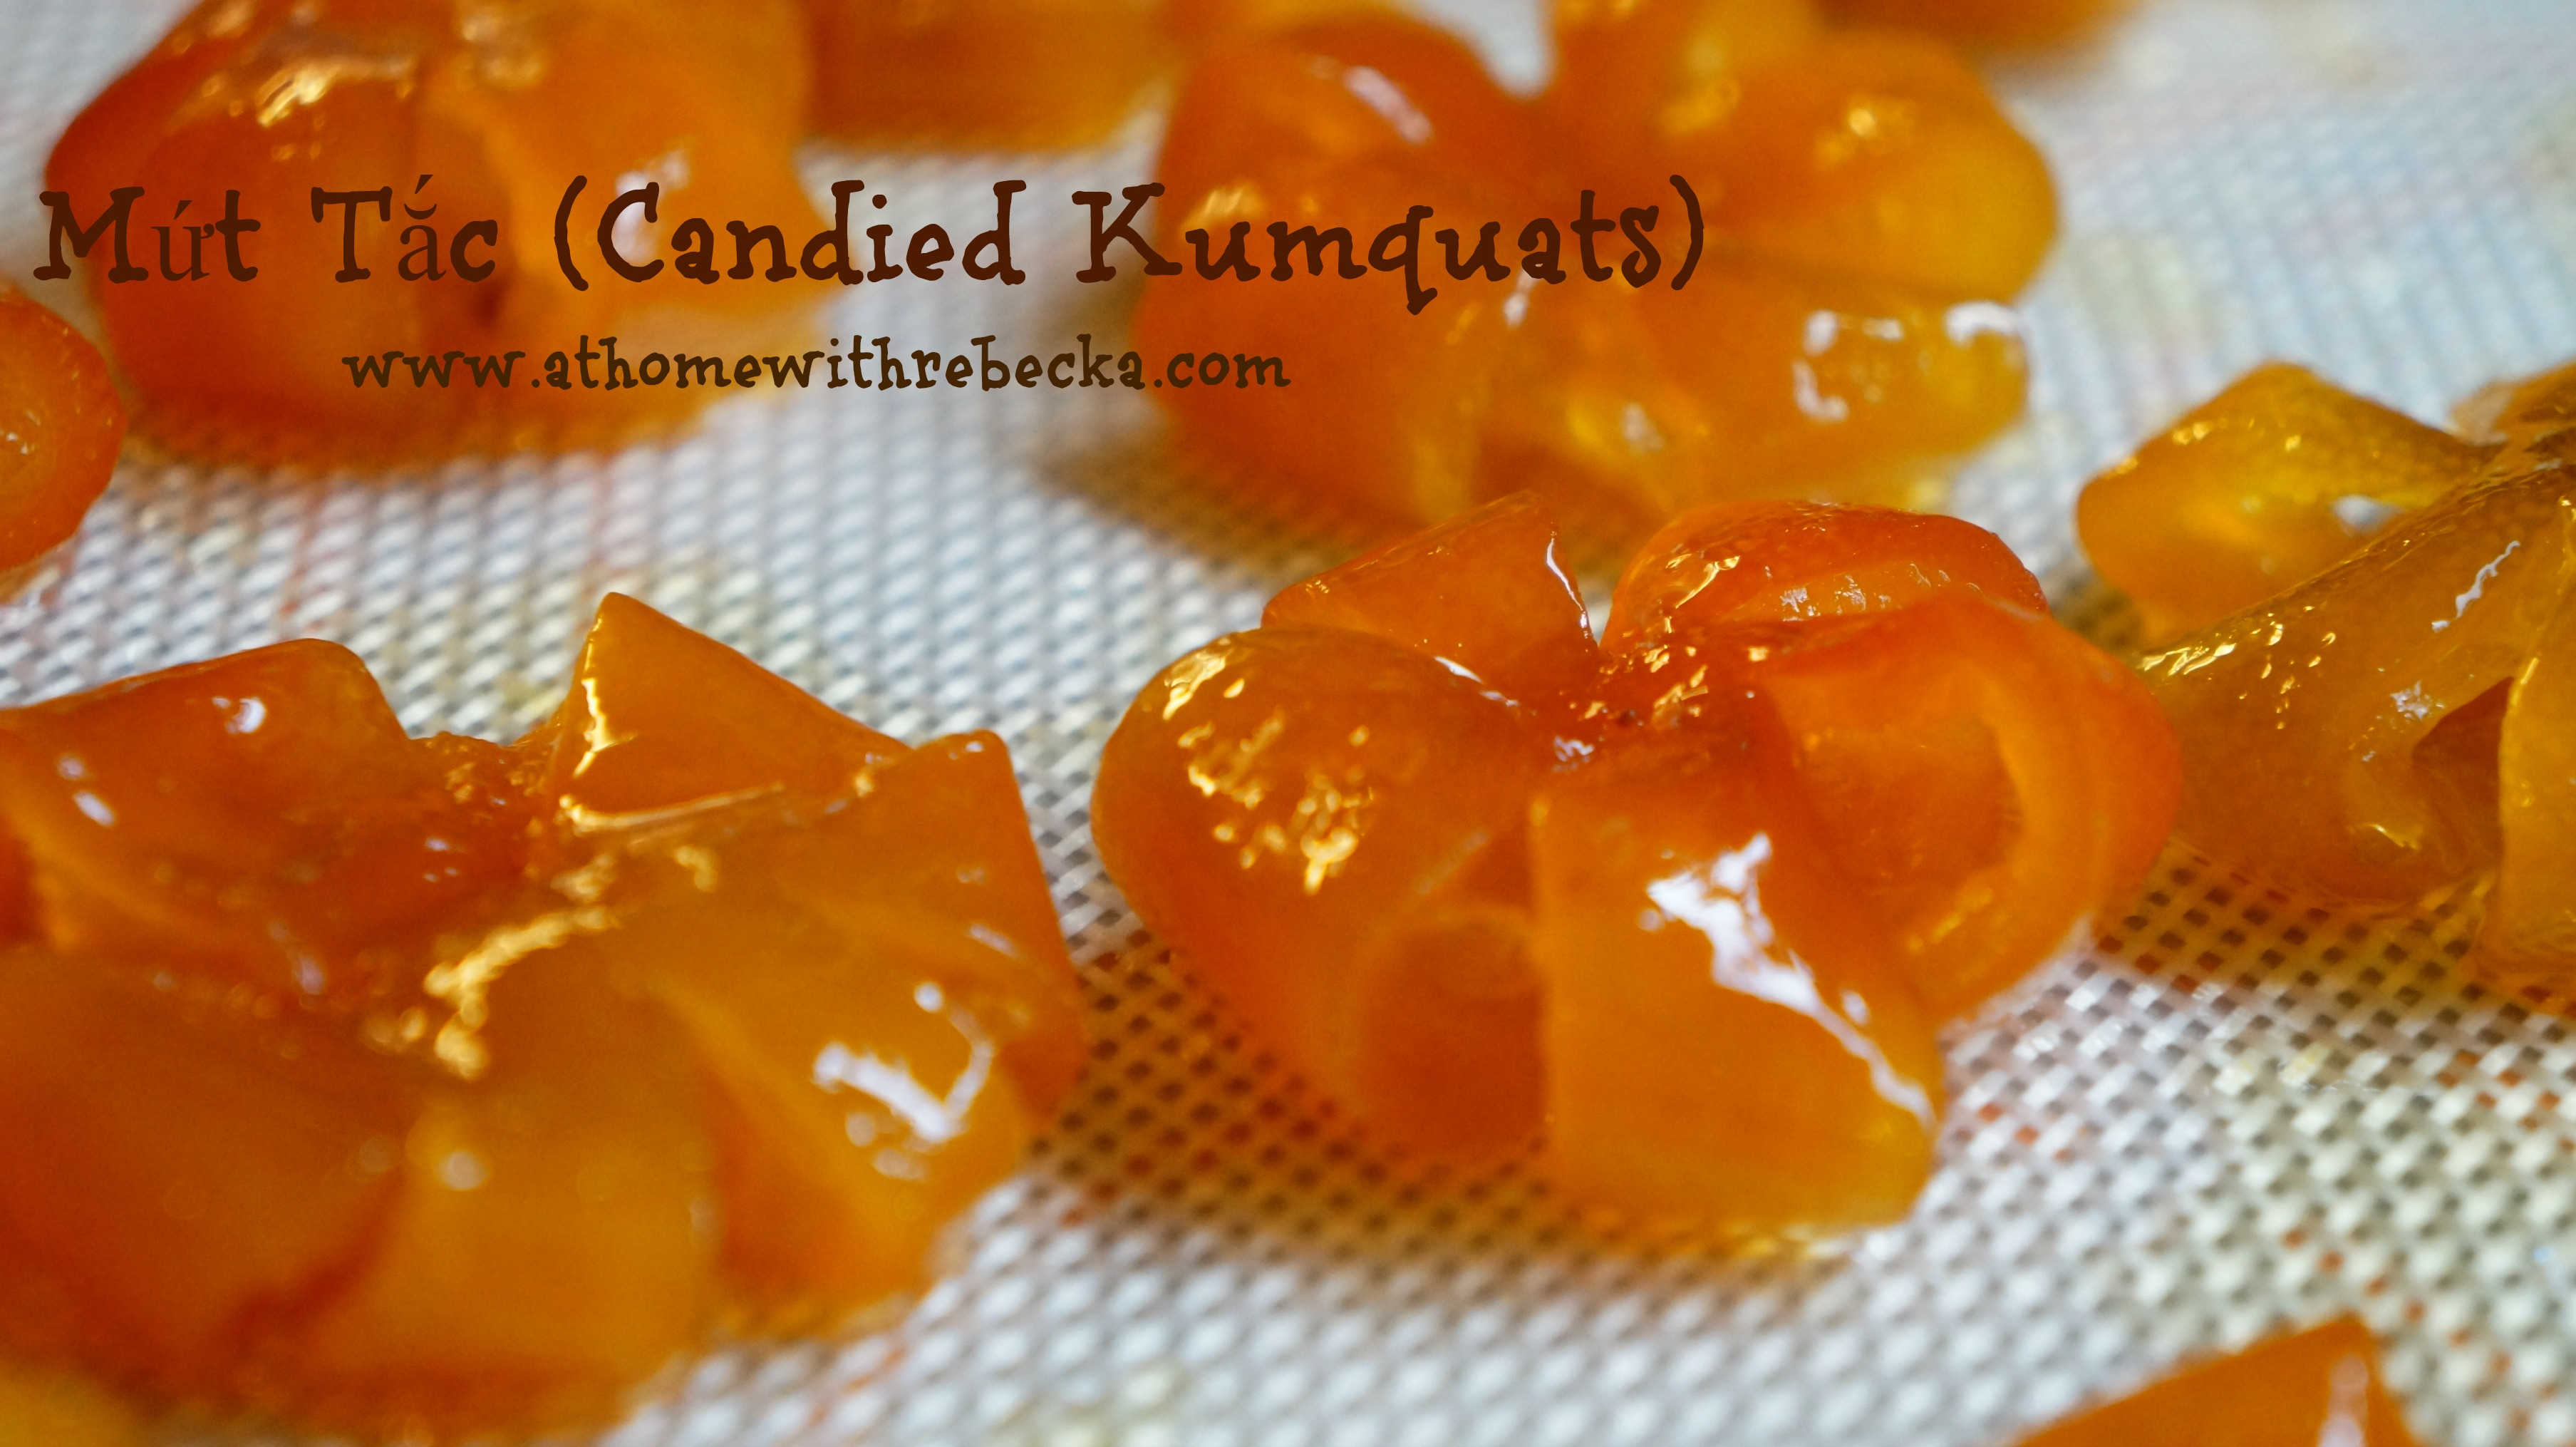 Mứt Tắc - Vietnamese Candied Kumquats - At Home with Rebecka